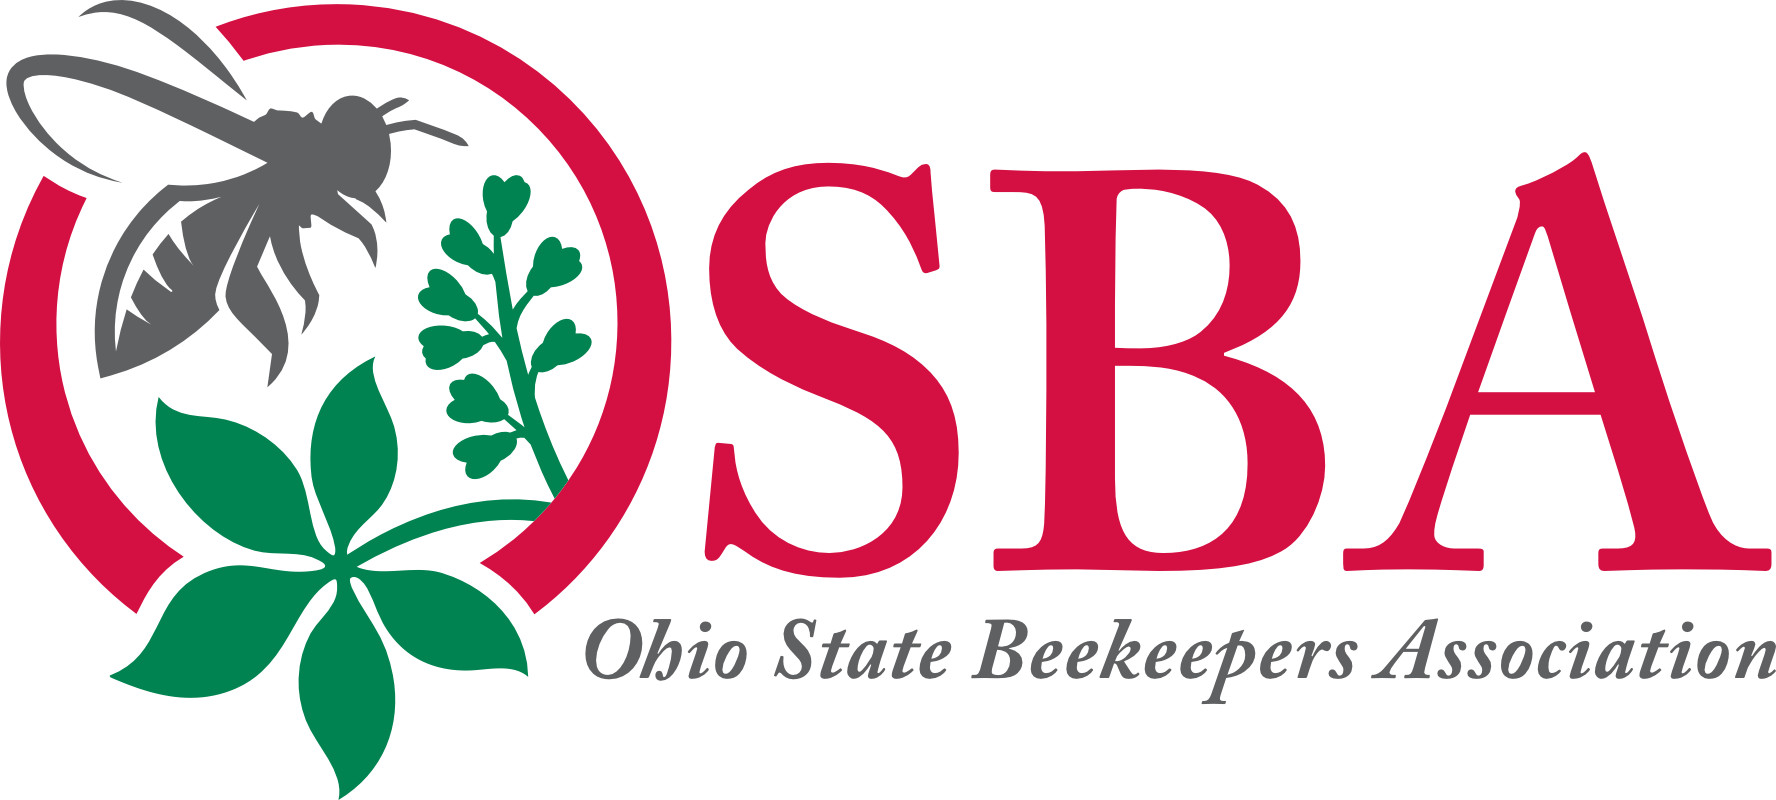 Vector ohio red. Osba logo state beekeepers